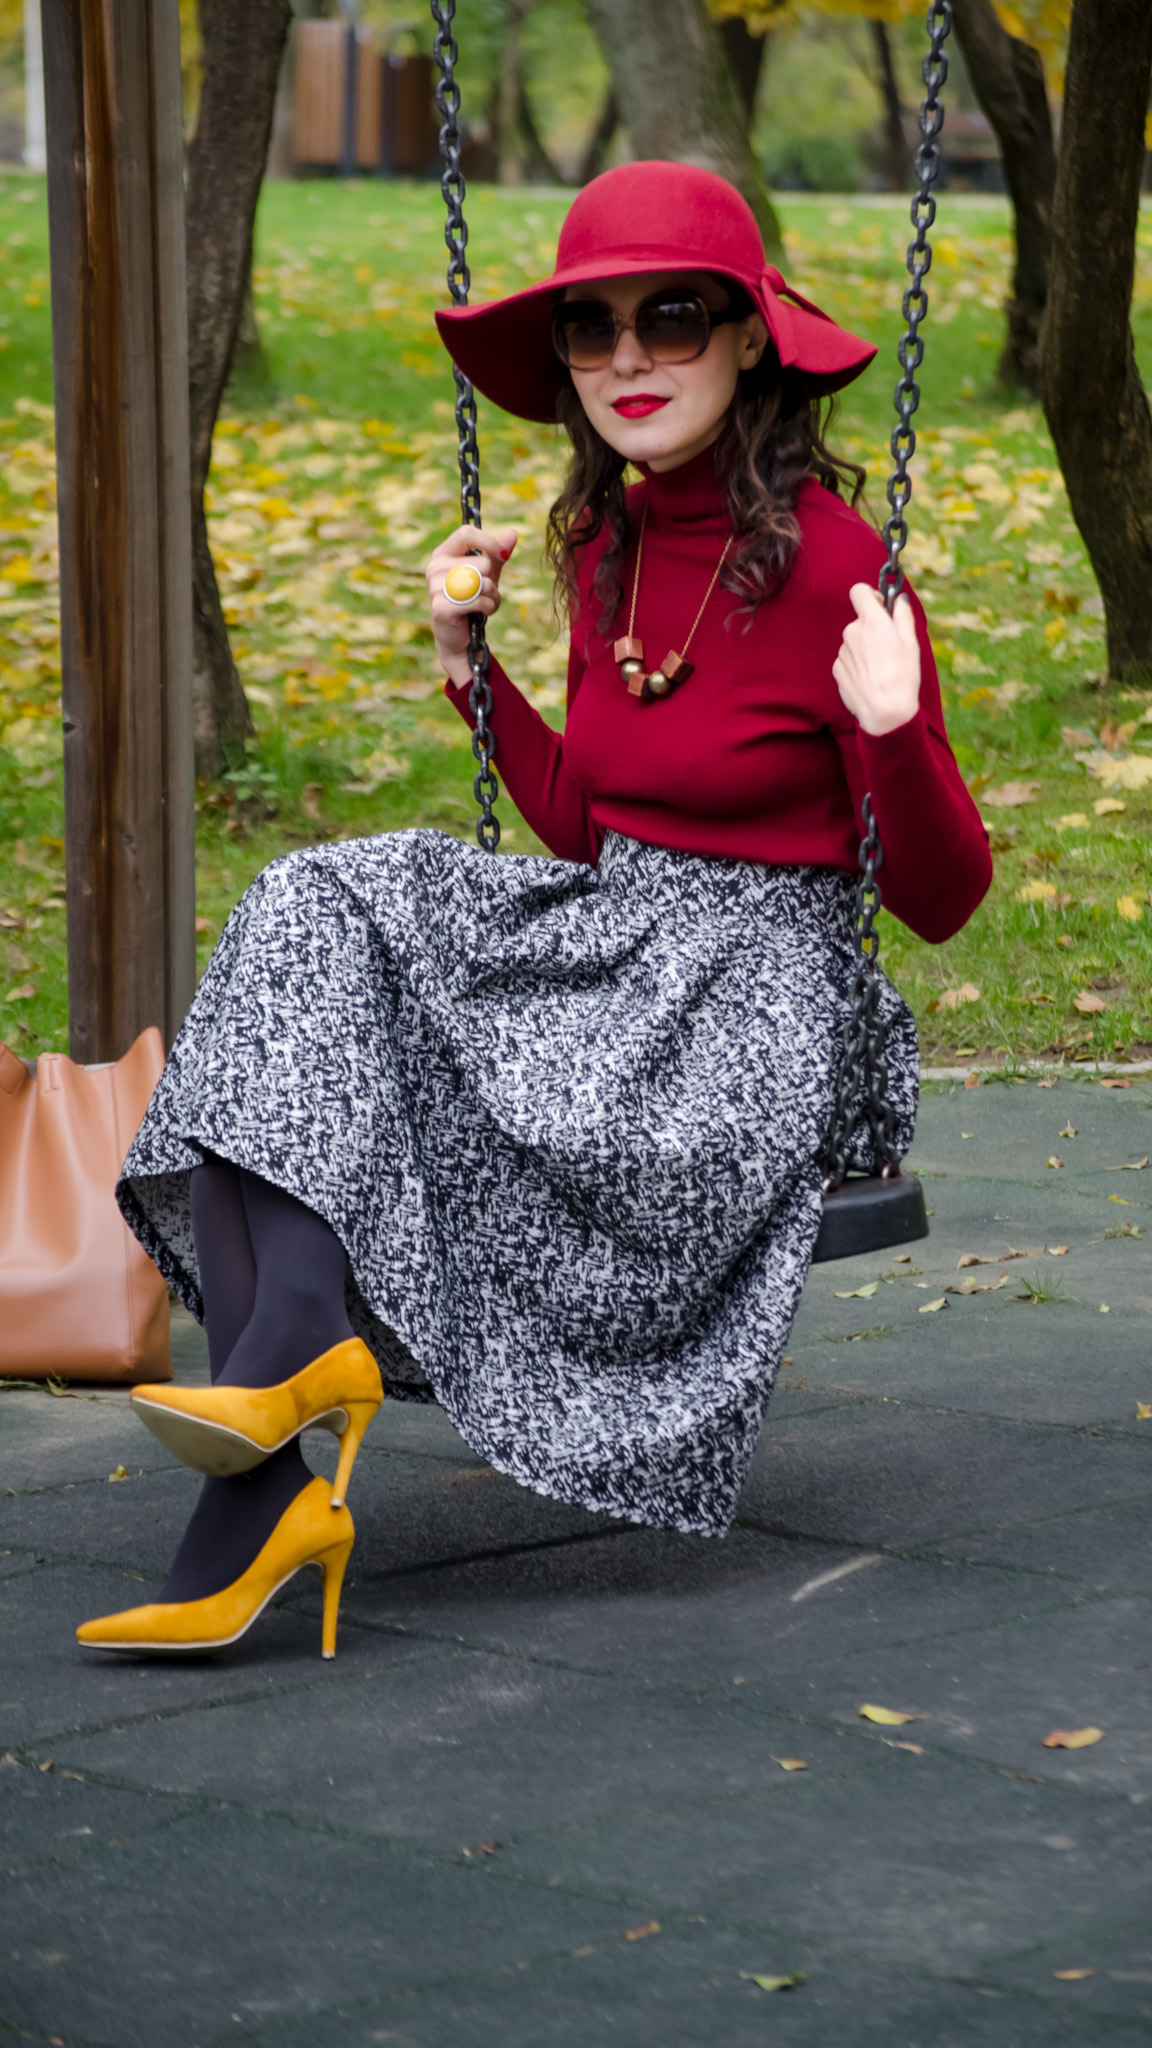 50s vibes and burgundy for fall floppy hat poema mustard shoes puffed up skirt black terranova jacket turtleneck koton over sized camel bag autumn fall park